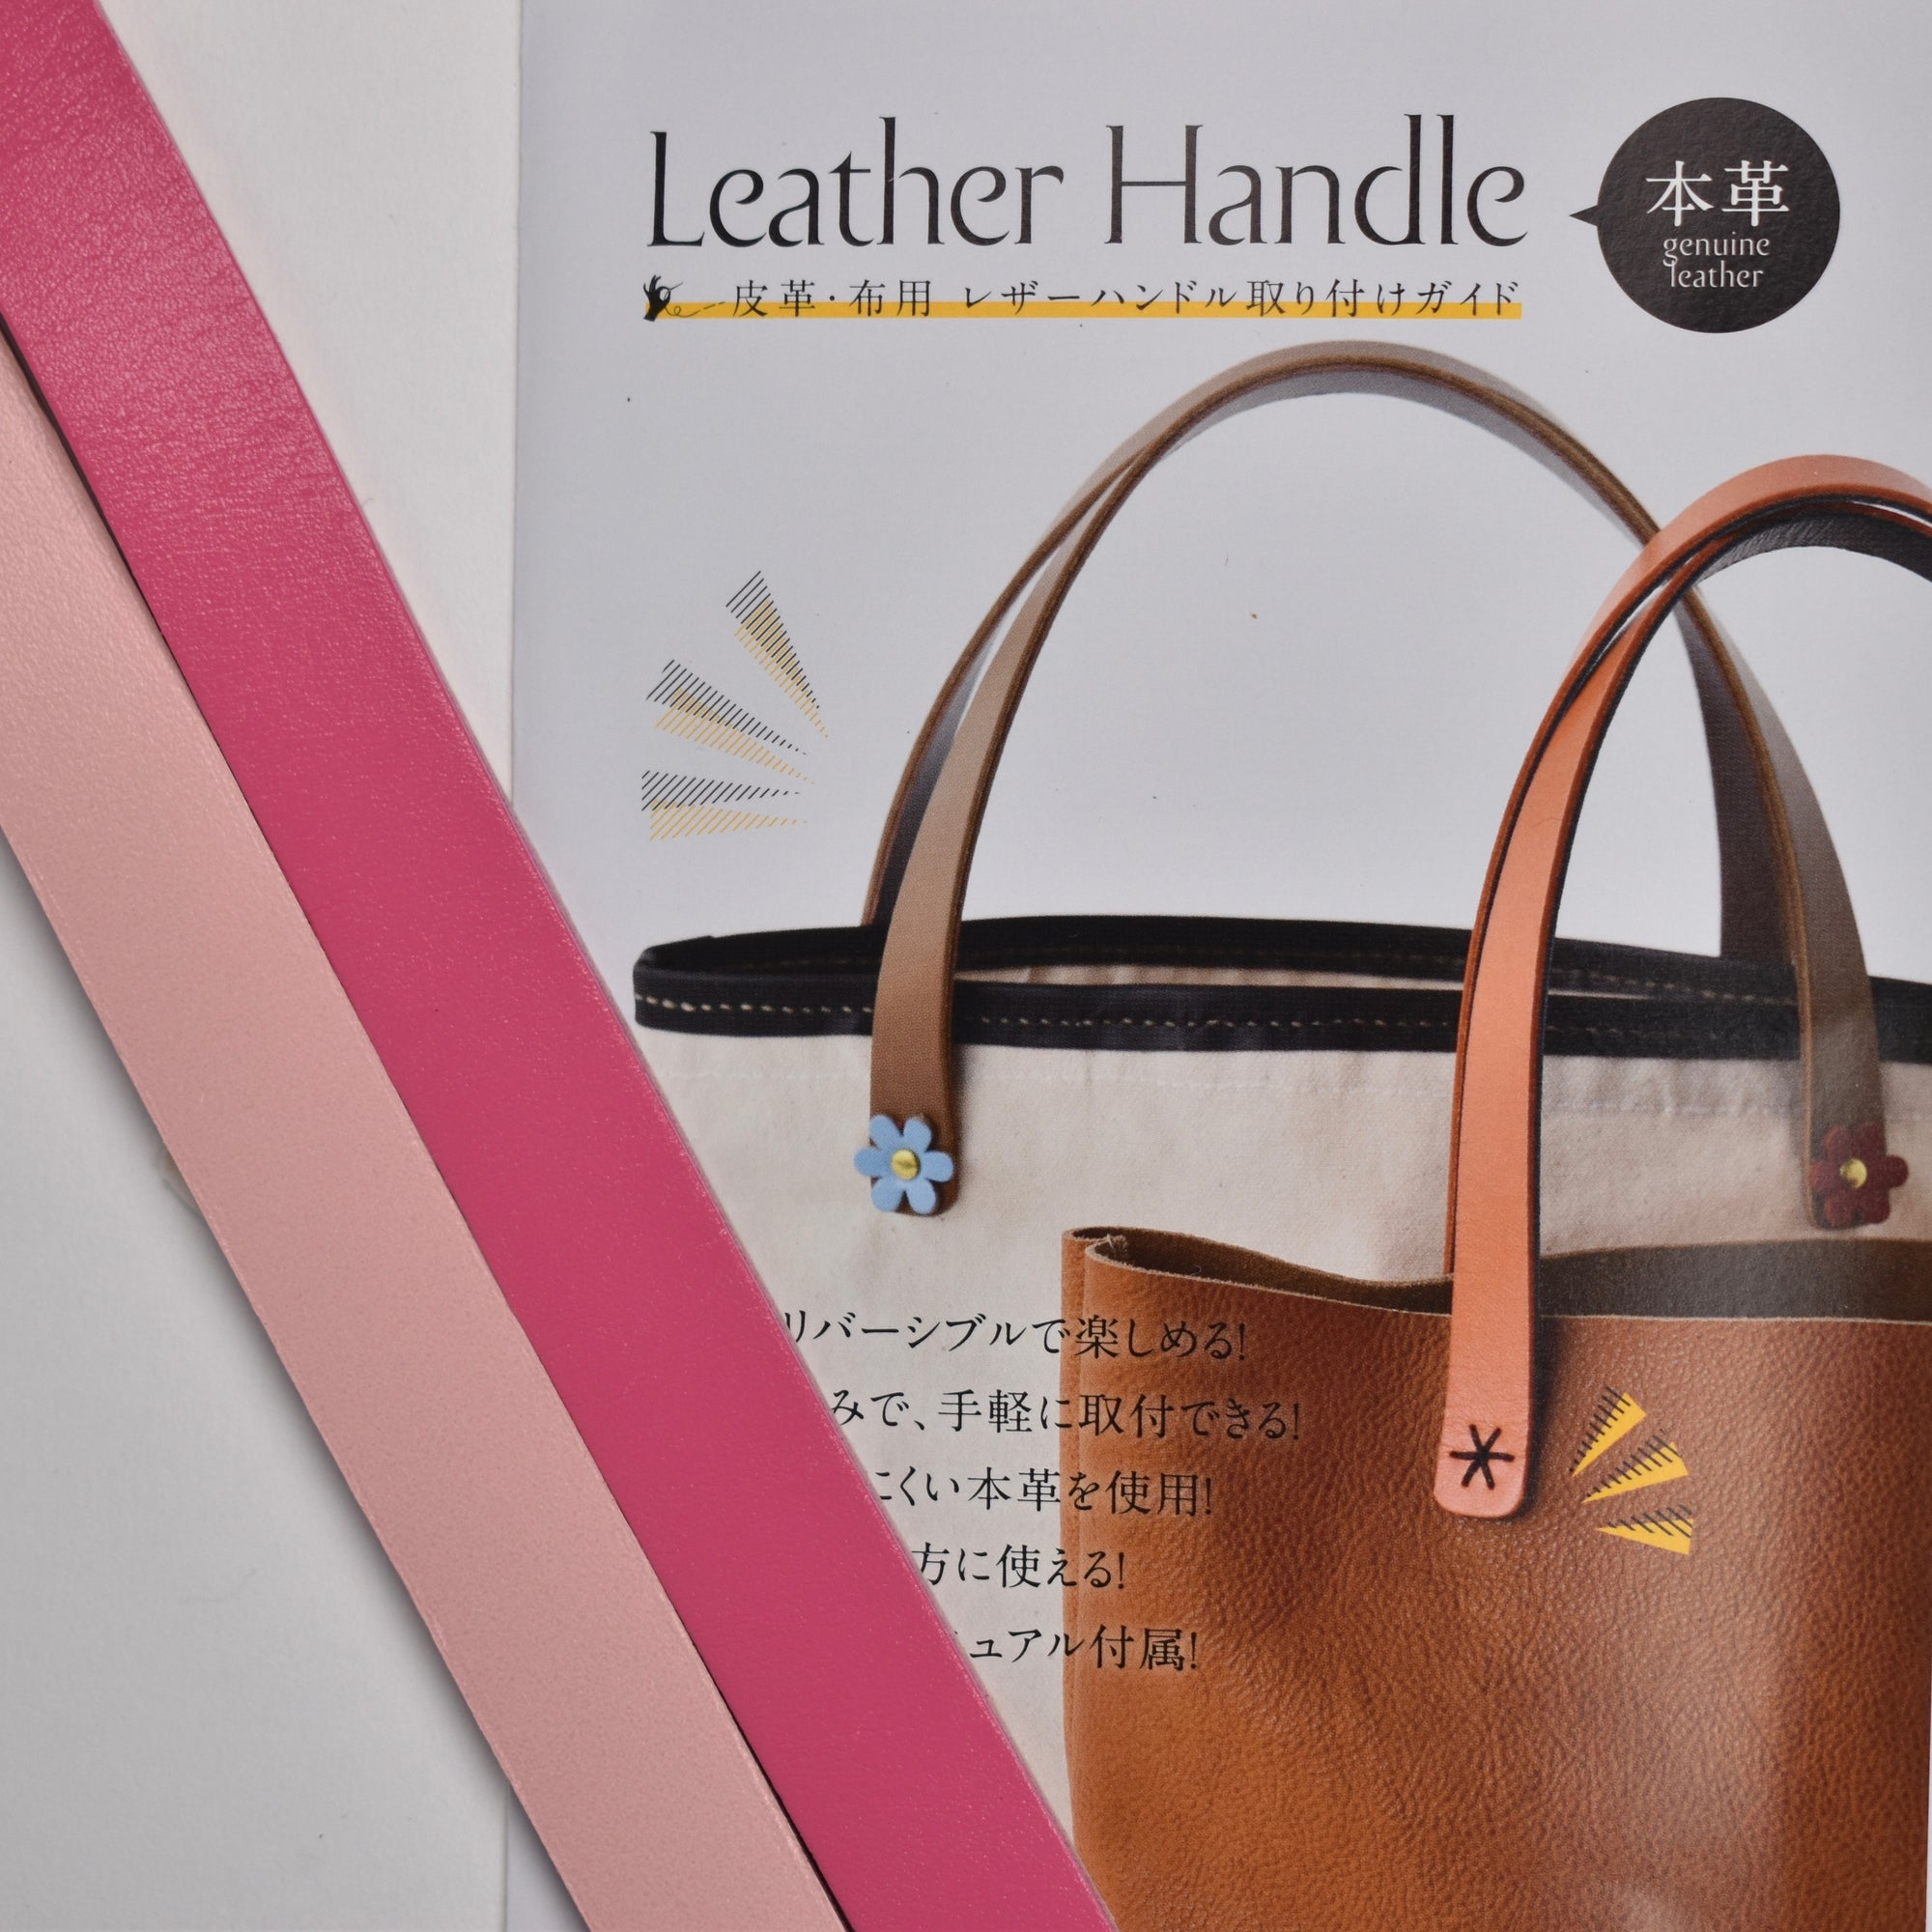 Leather bag handles